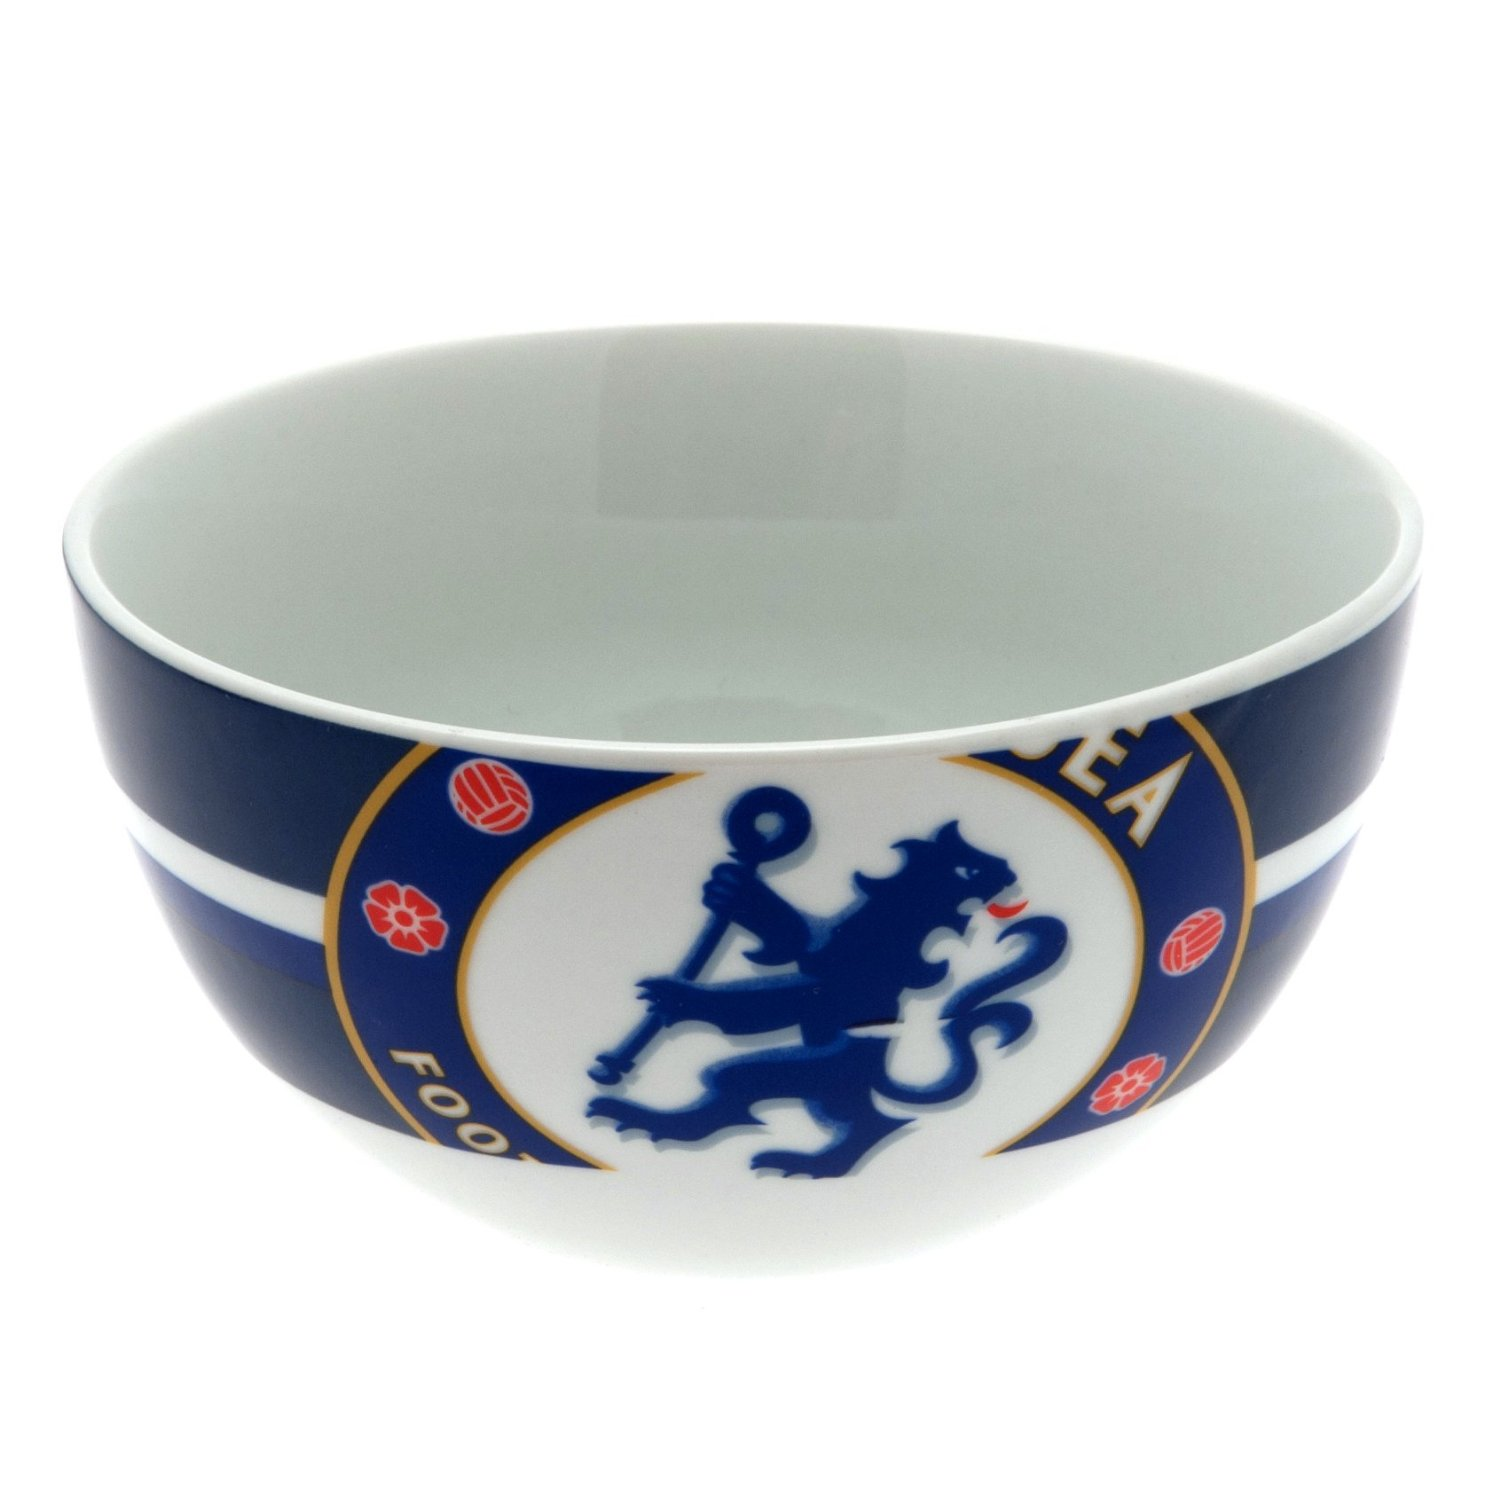 Chelsea Football Cereal Bowl